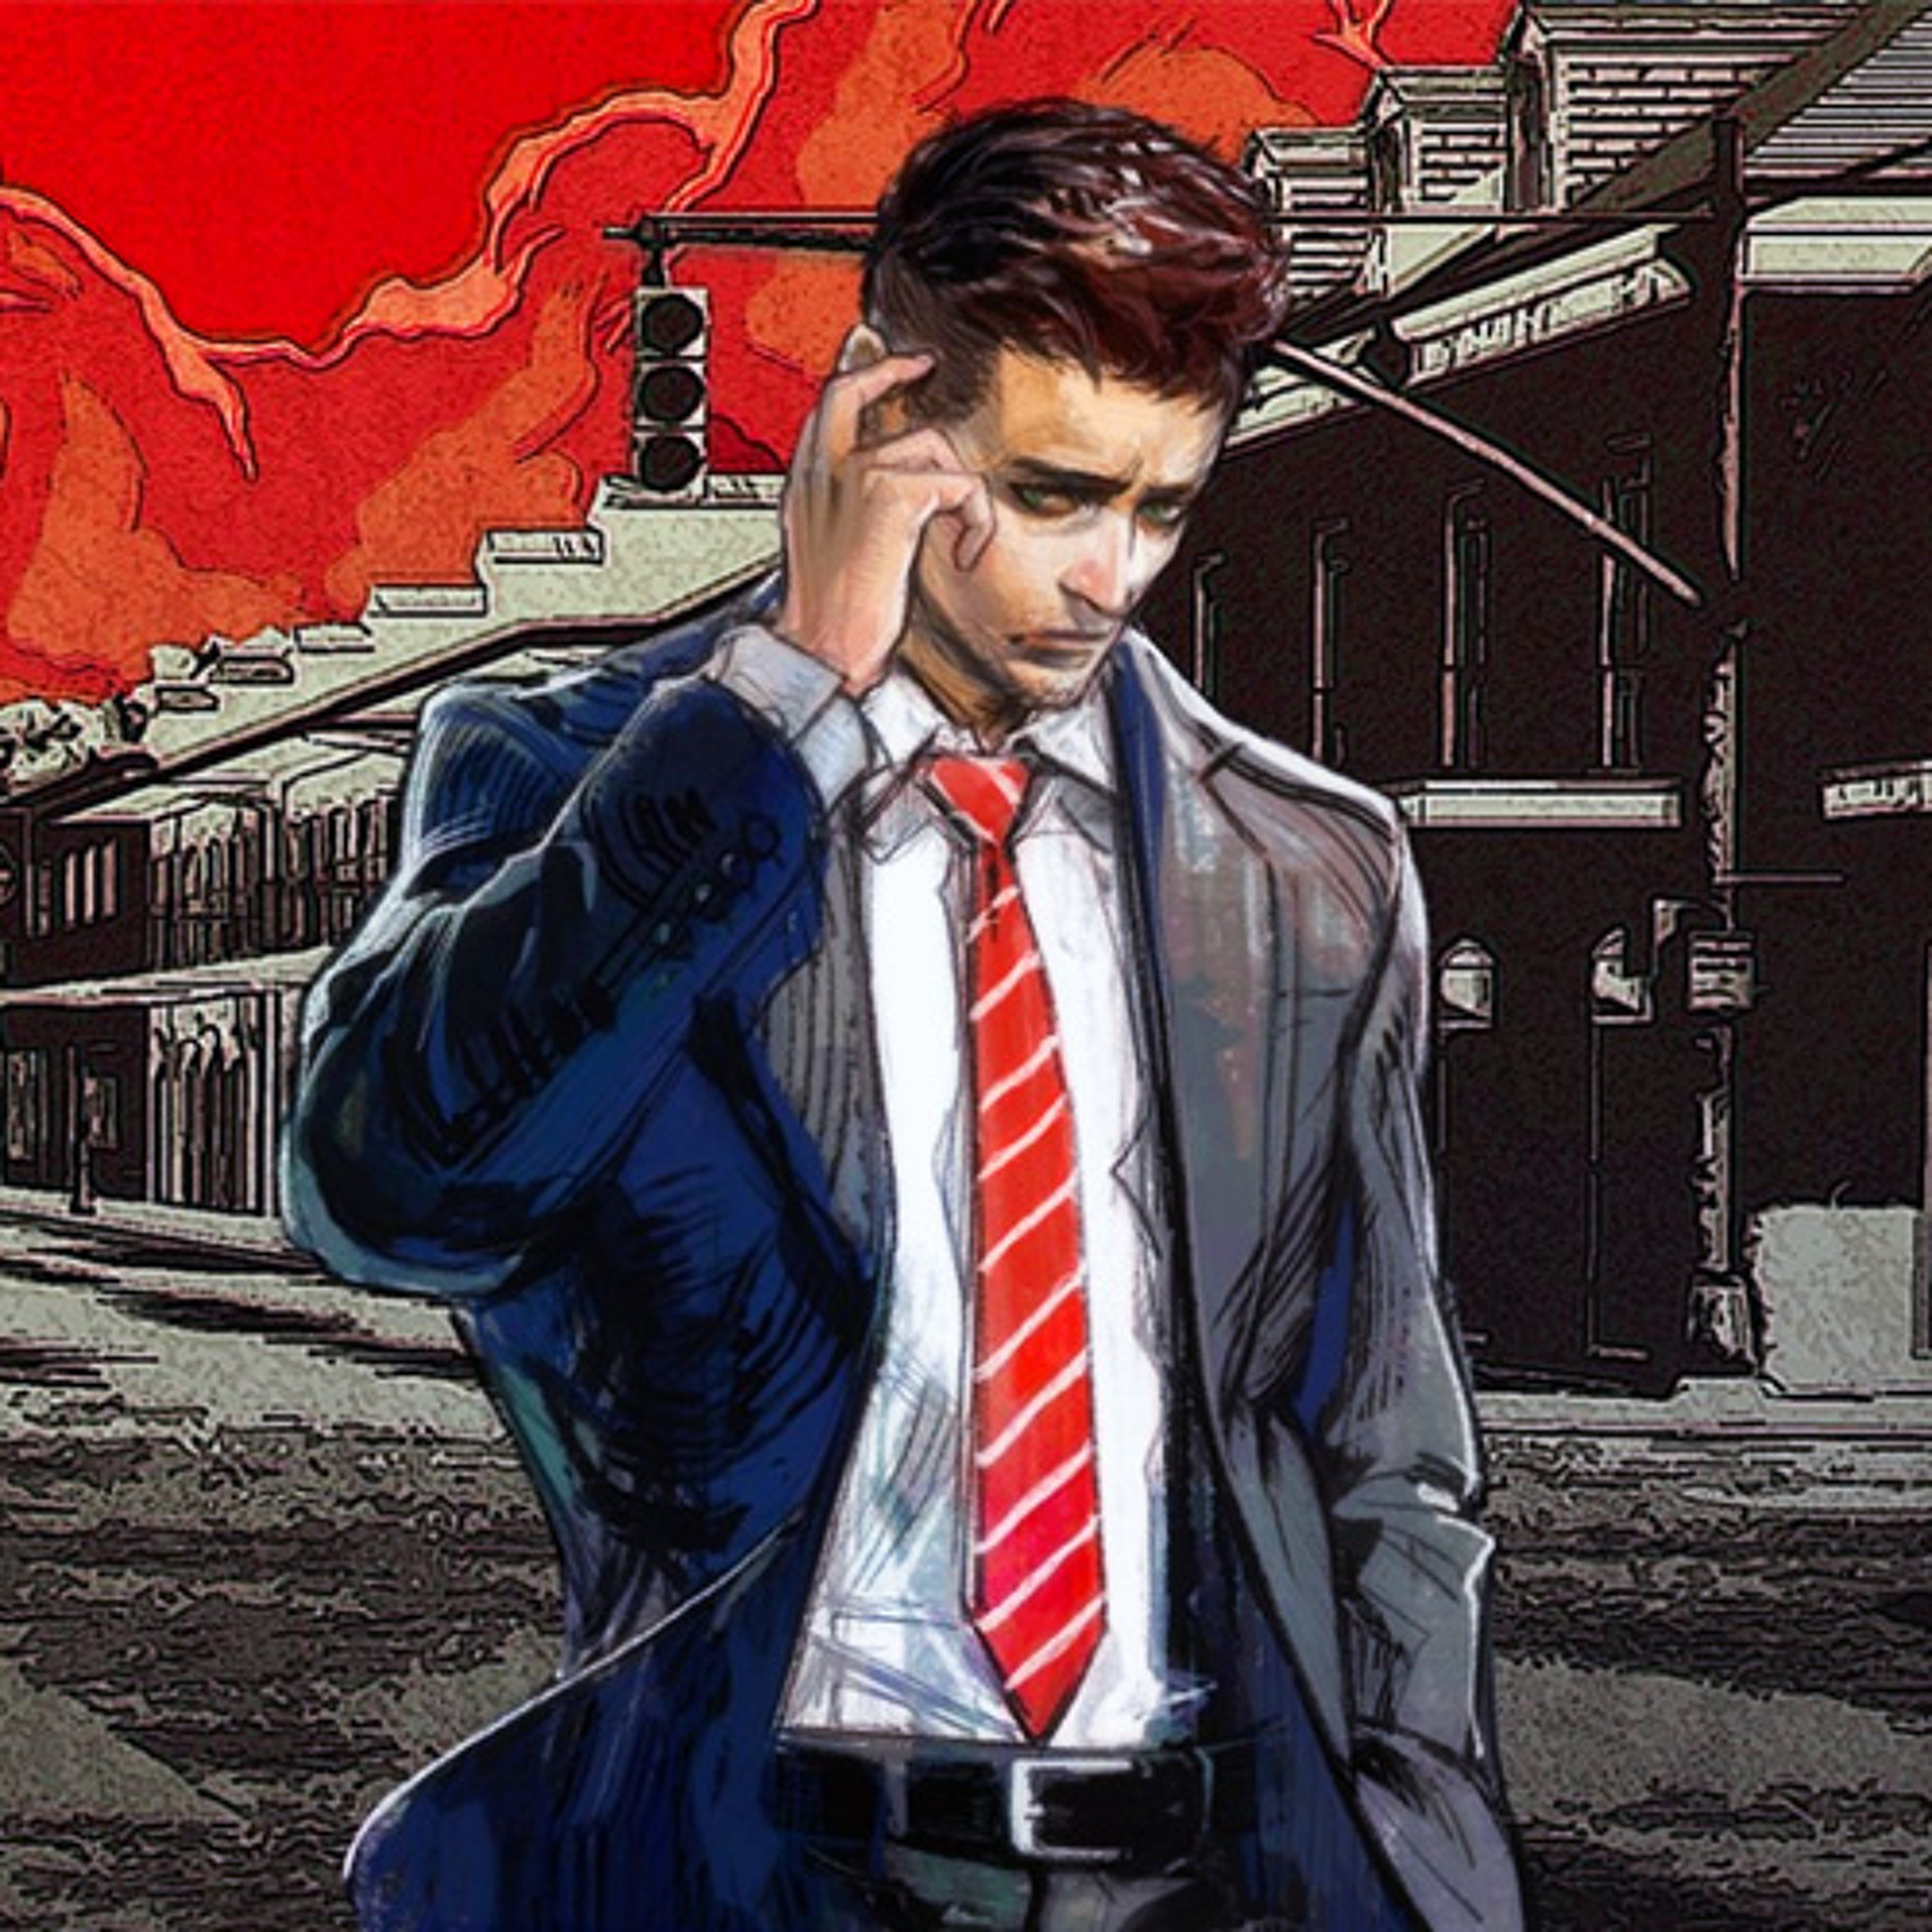 Deadly Premonition 2 (Review)